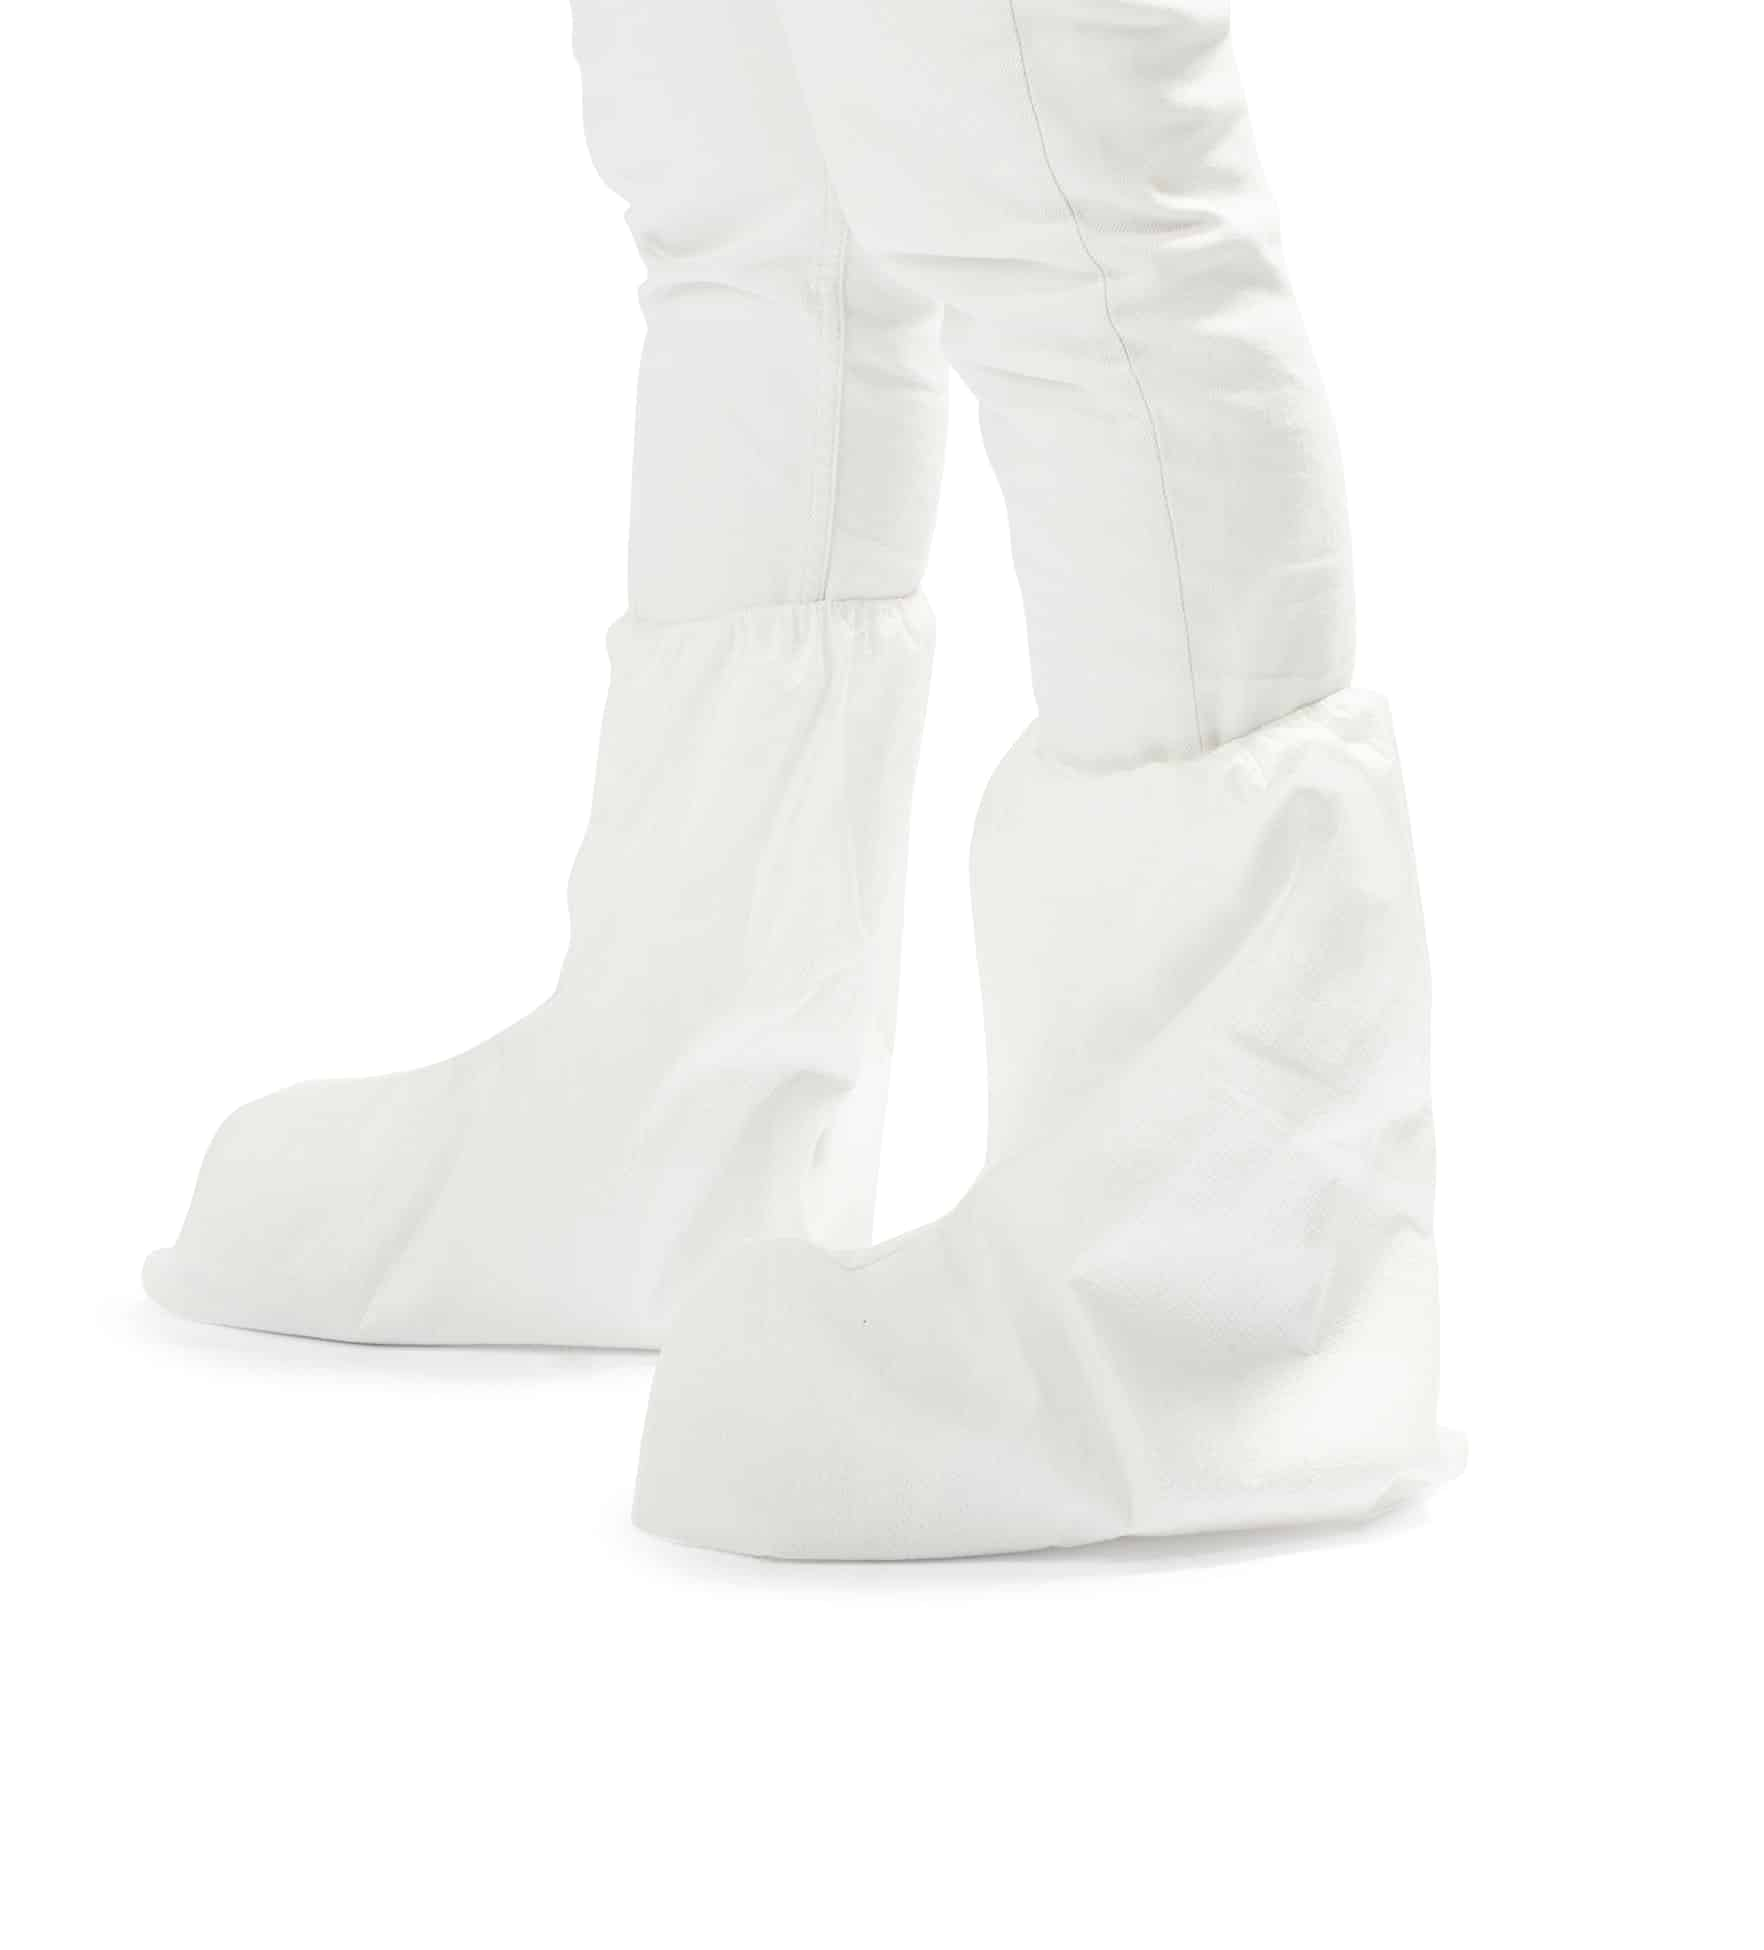 cobre botas impermeáveis 2 - waterproof boot-covers - clothe protect